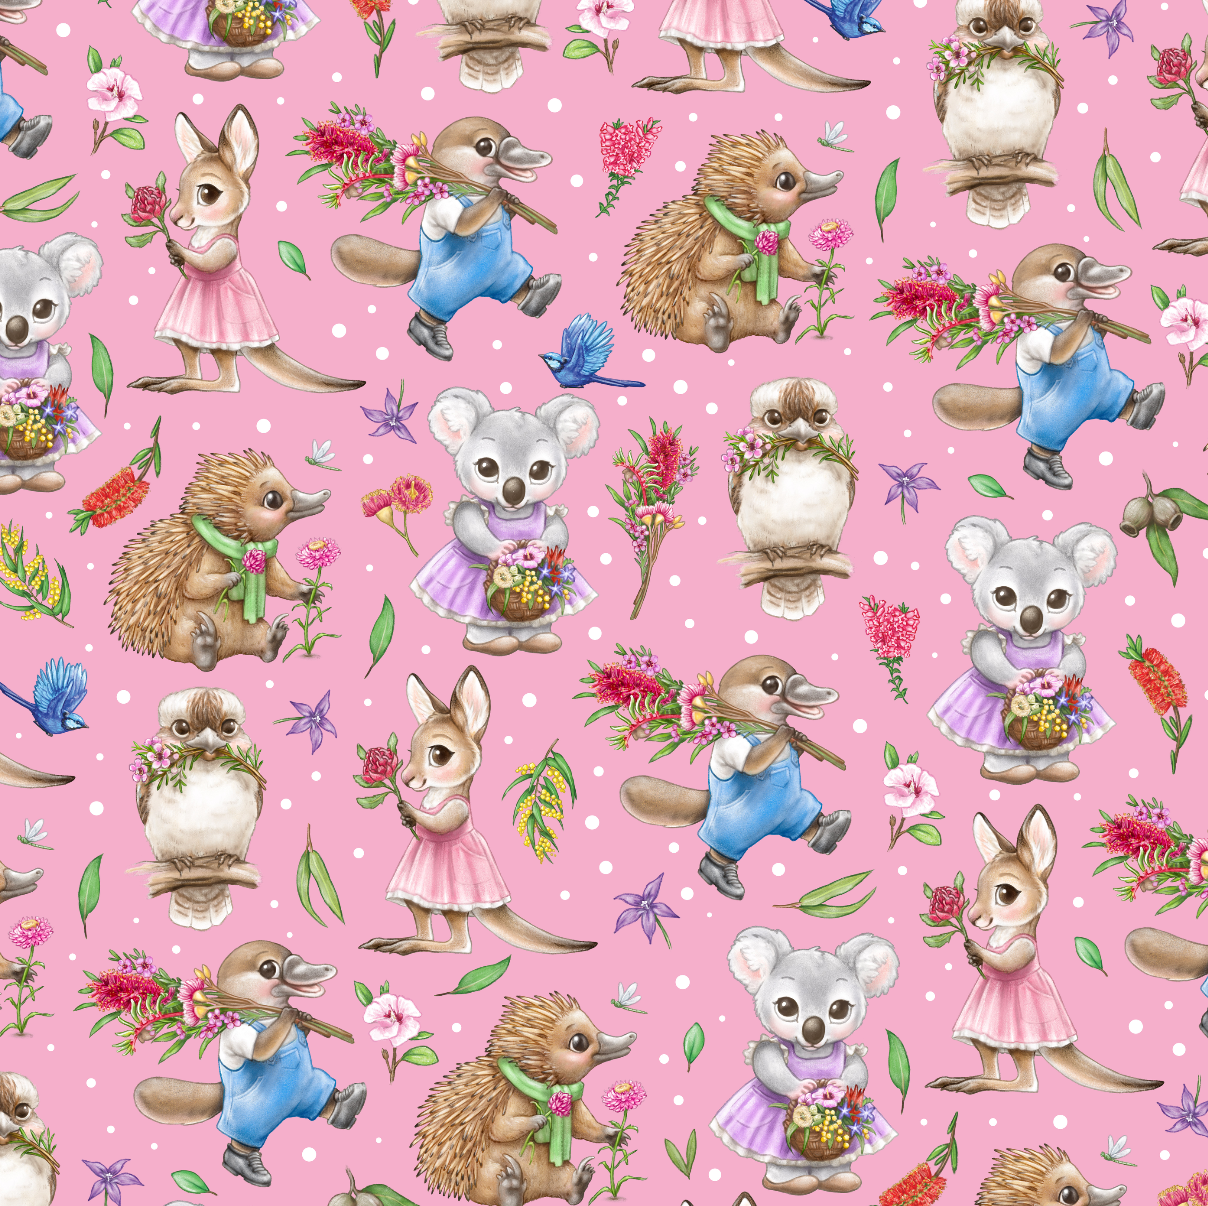 PRE ORDER - Aussie Animals Pink - Digital Fabric Print